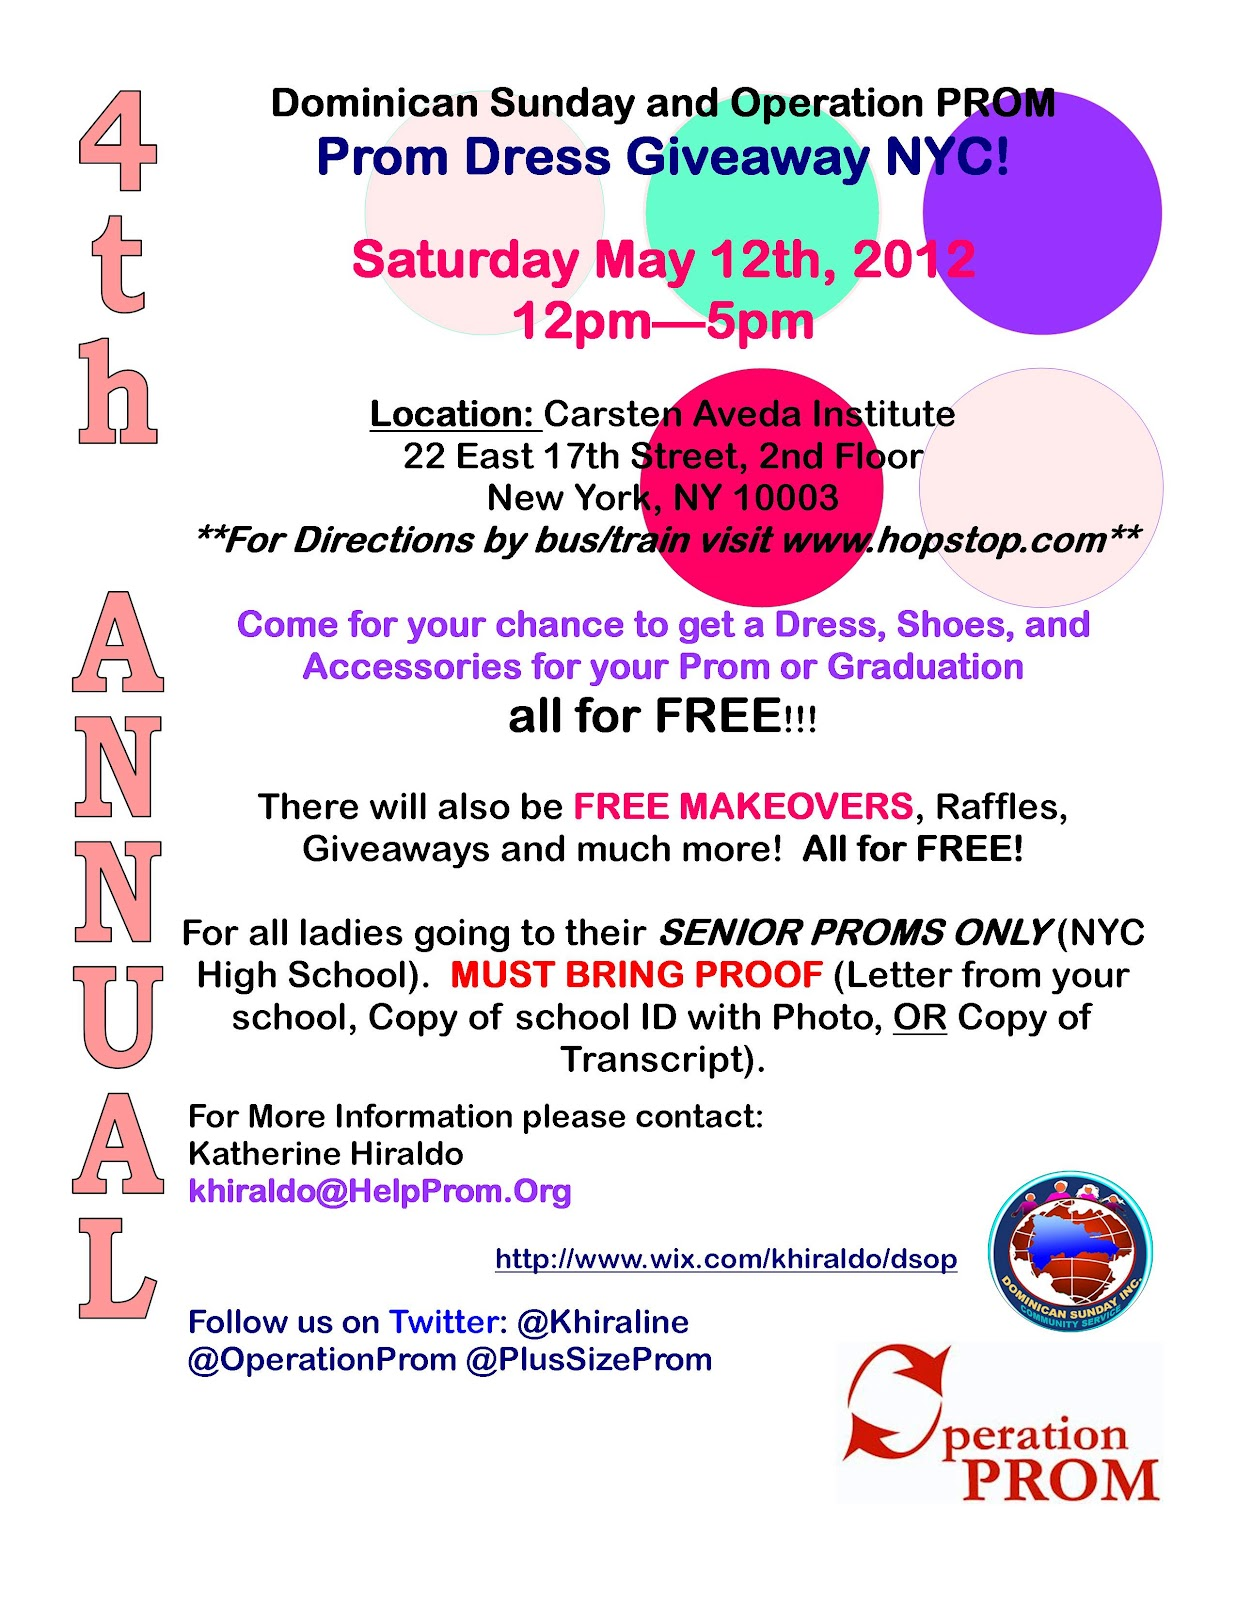 prom giveaway 4th annual prom dress giveaway nyc free dresses for prom 6257